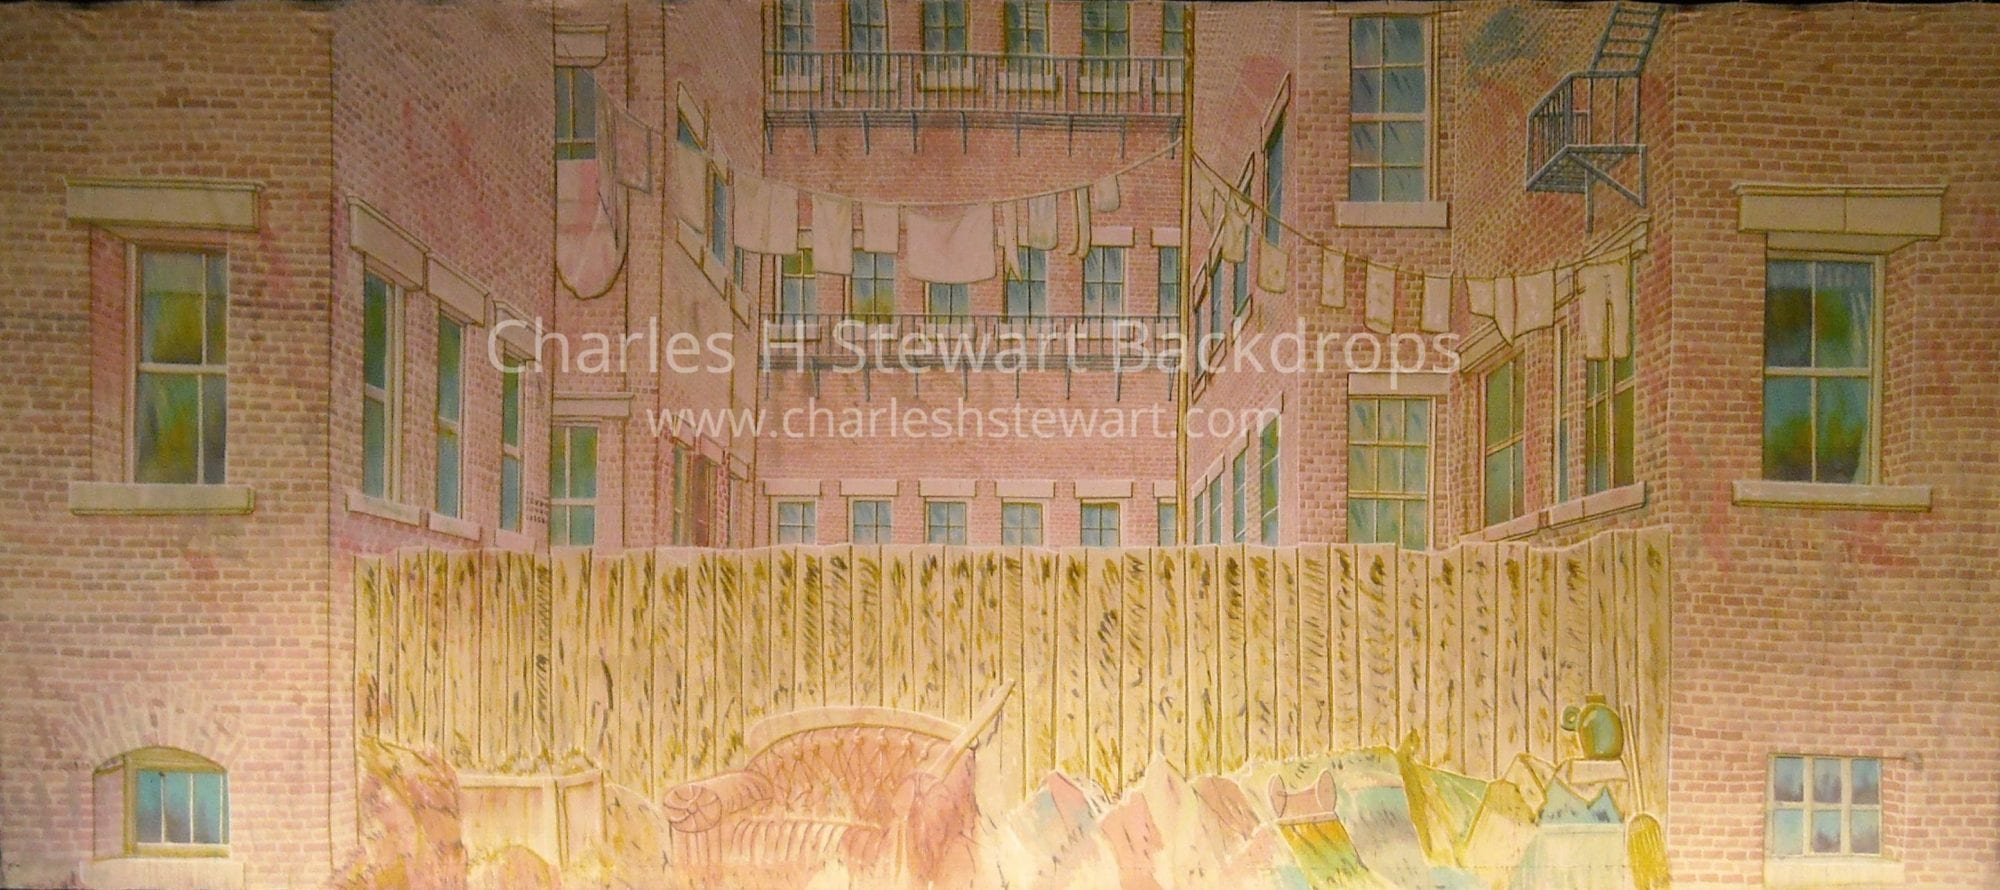 Alley Backdrop Backdrops By Charles H Stewart